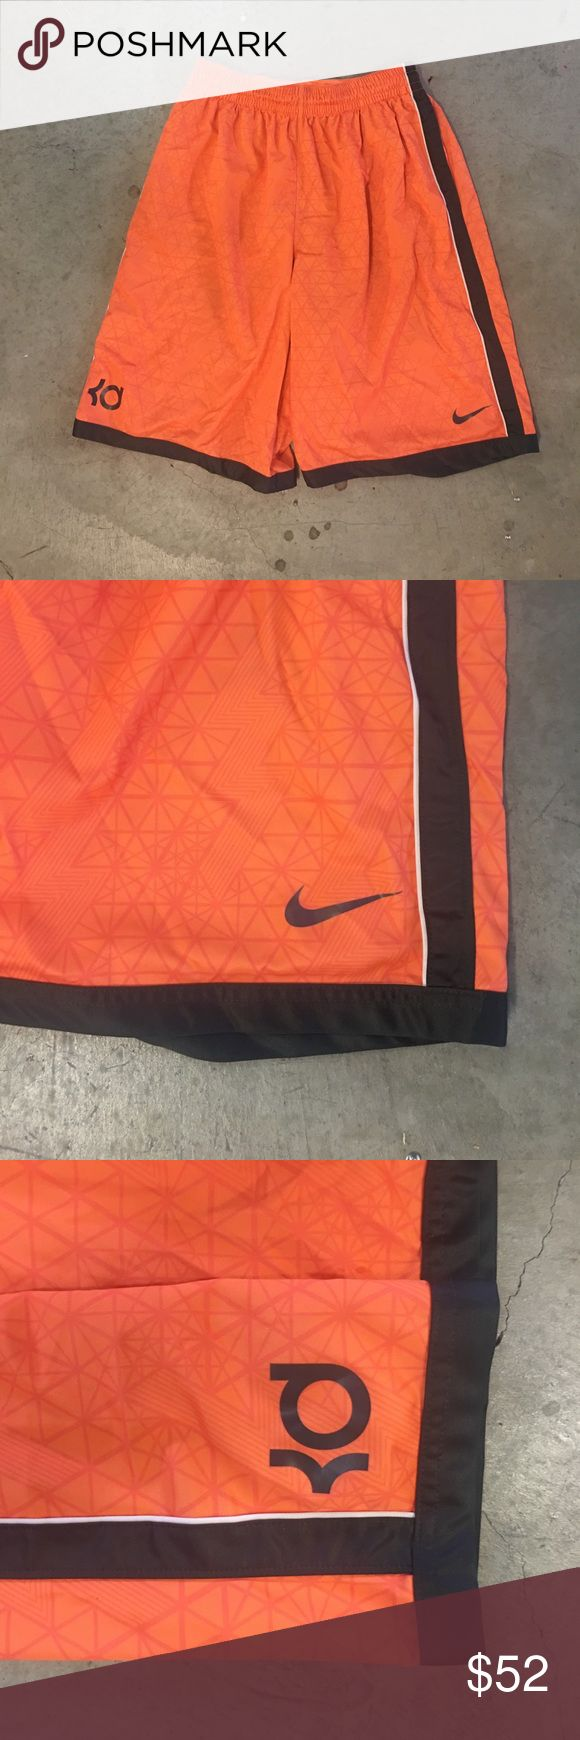 🏃🏽Nike Dri-Fit KD Basketball Shorts | Men's ‼️USED‼️  🏃🏽Nike Dri-Fit KD Basketball Shorts | Men's These shorts feel so good!!! They come in a very bright settle orange! Very loose fit. Available in a XL   Condition: Like New   ‼️Deals Welcome  🚫NoTrades Nike Shorts Athletic